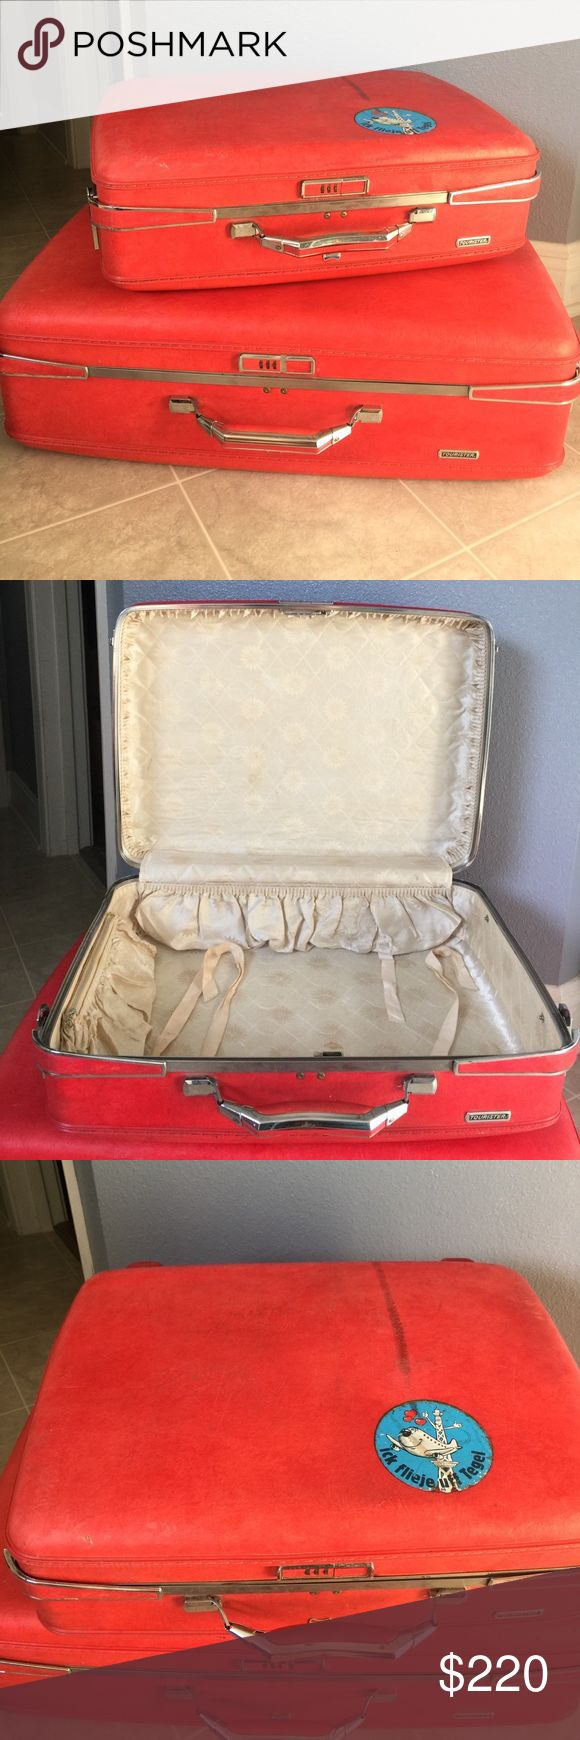 Vintage American Tourister Red Hardback Suitcases Vintage American Tourister Red Hardback Suitcases w/lock combination. Great vintage Condition. Large suitcase measures 26x19x8. Small suitcase measures 20x15x7. The price is for both suitcases together. American Tourister Bags Travel Bags